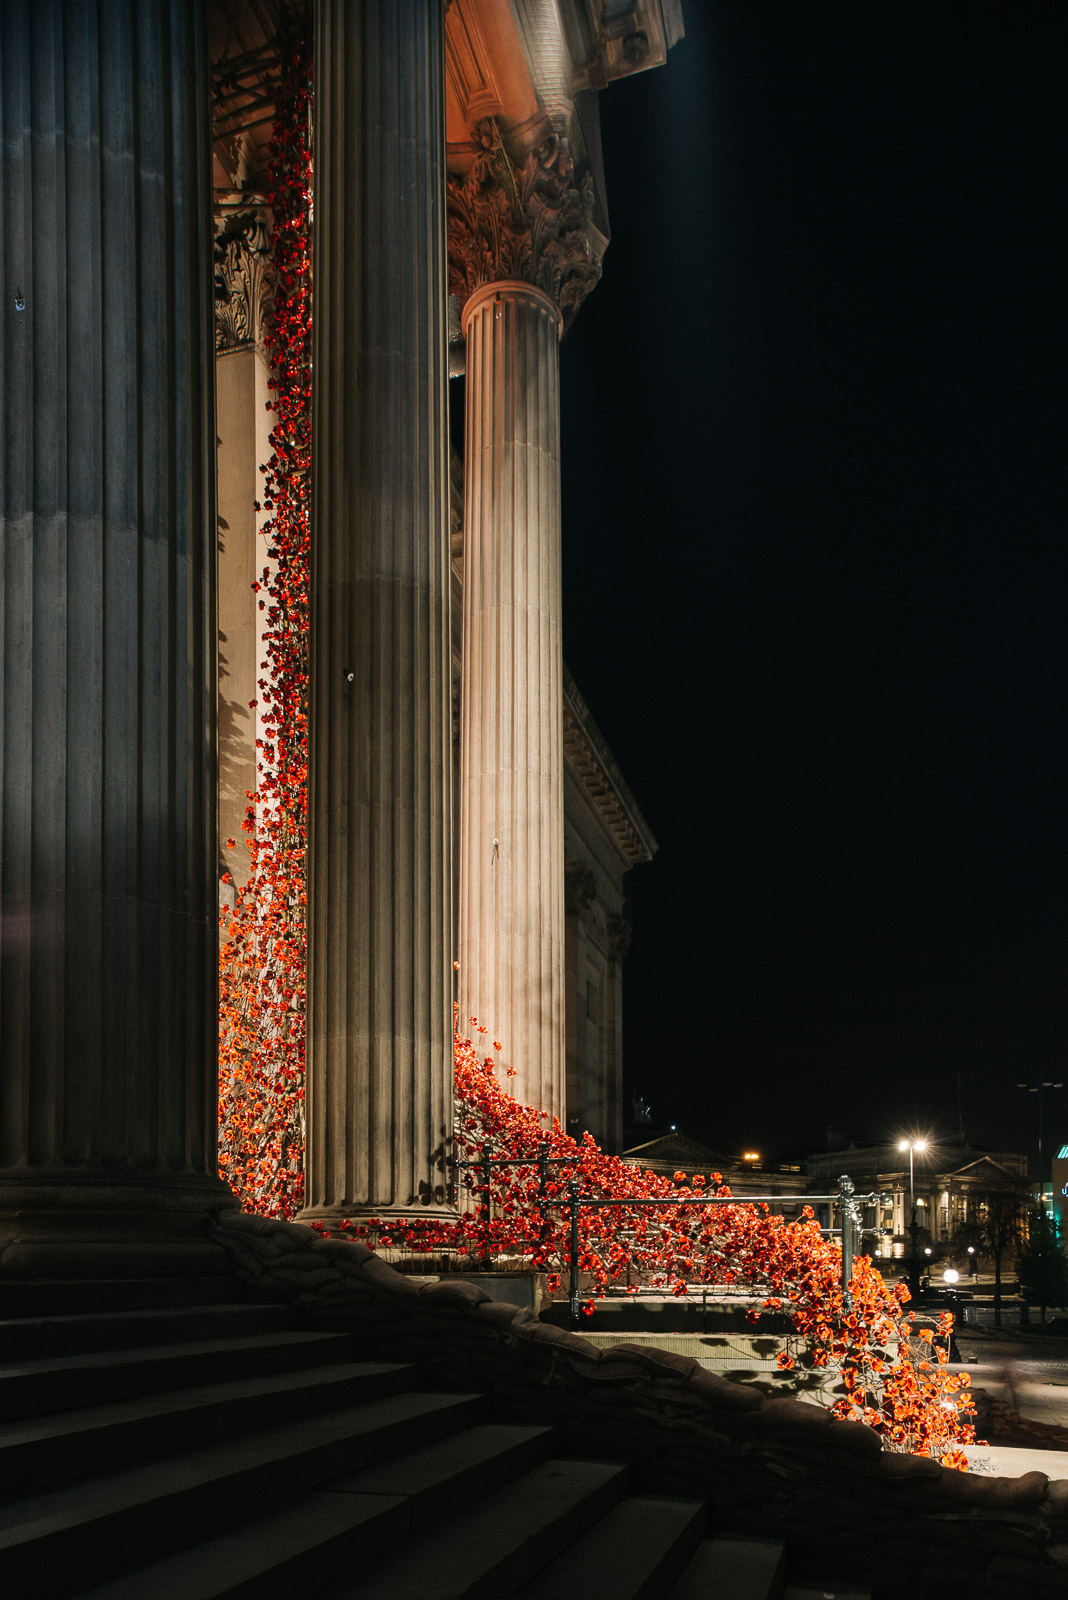 poppies-st-georges-hall-liverpool-3176-pete-carr